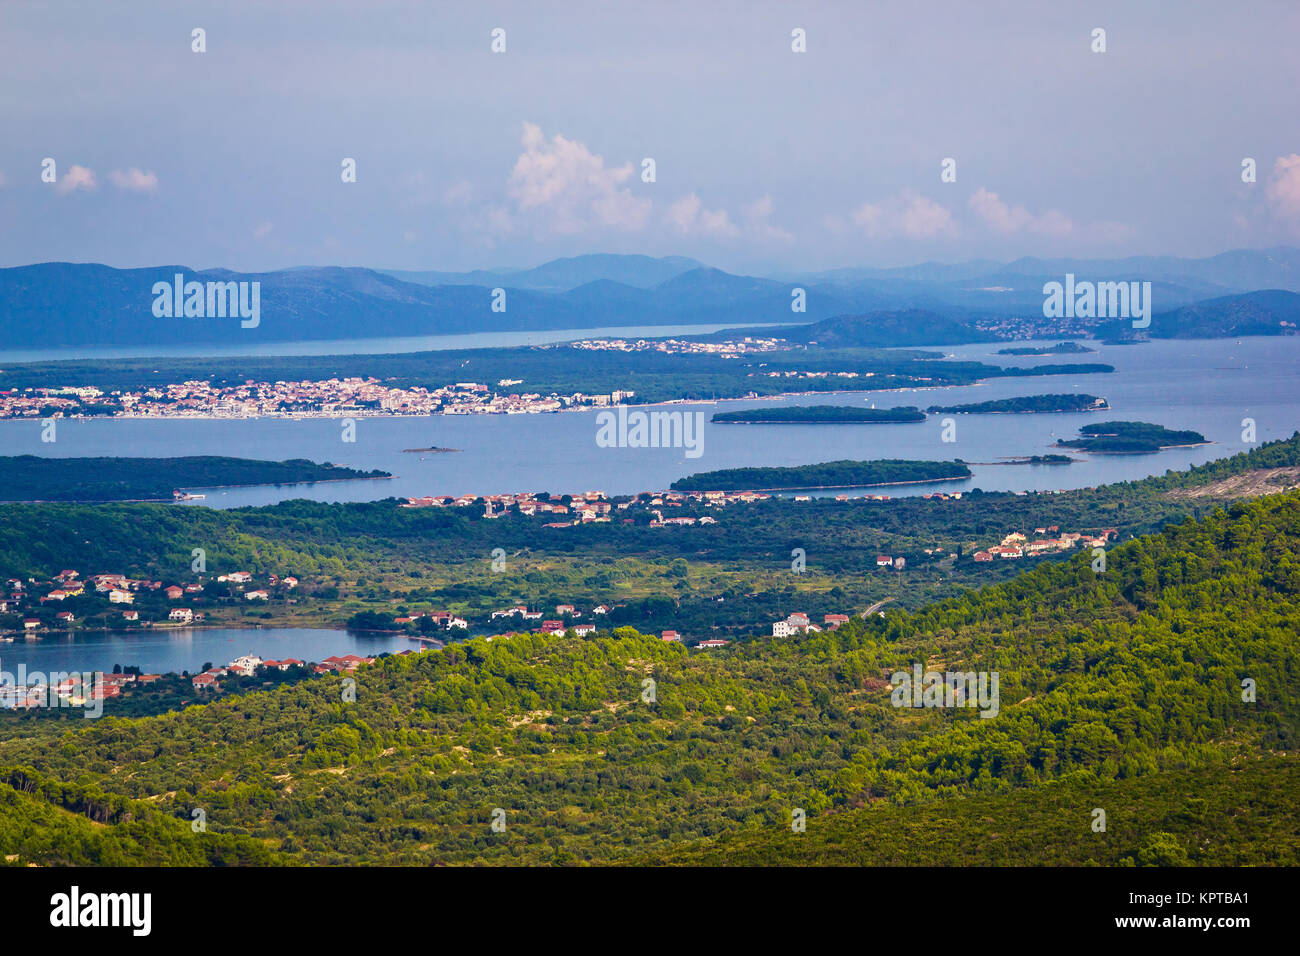 Croatian islands archipelago aerial view, bay of Pasman island - Stock Image